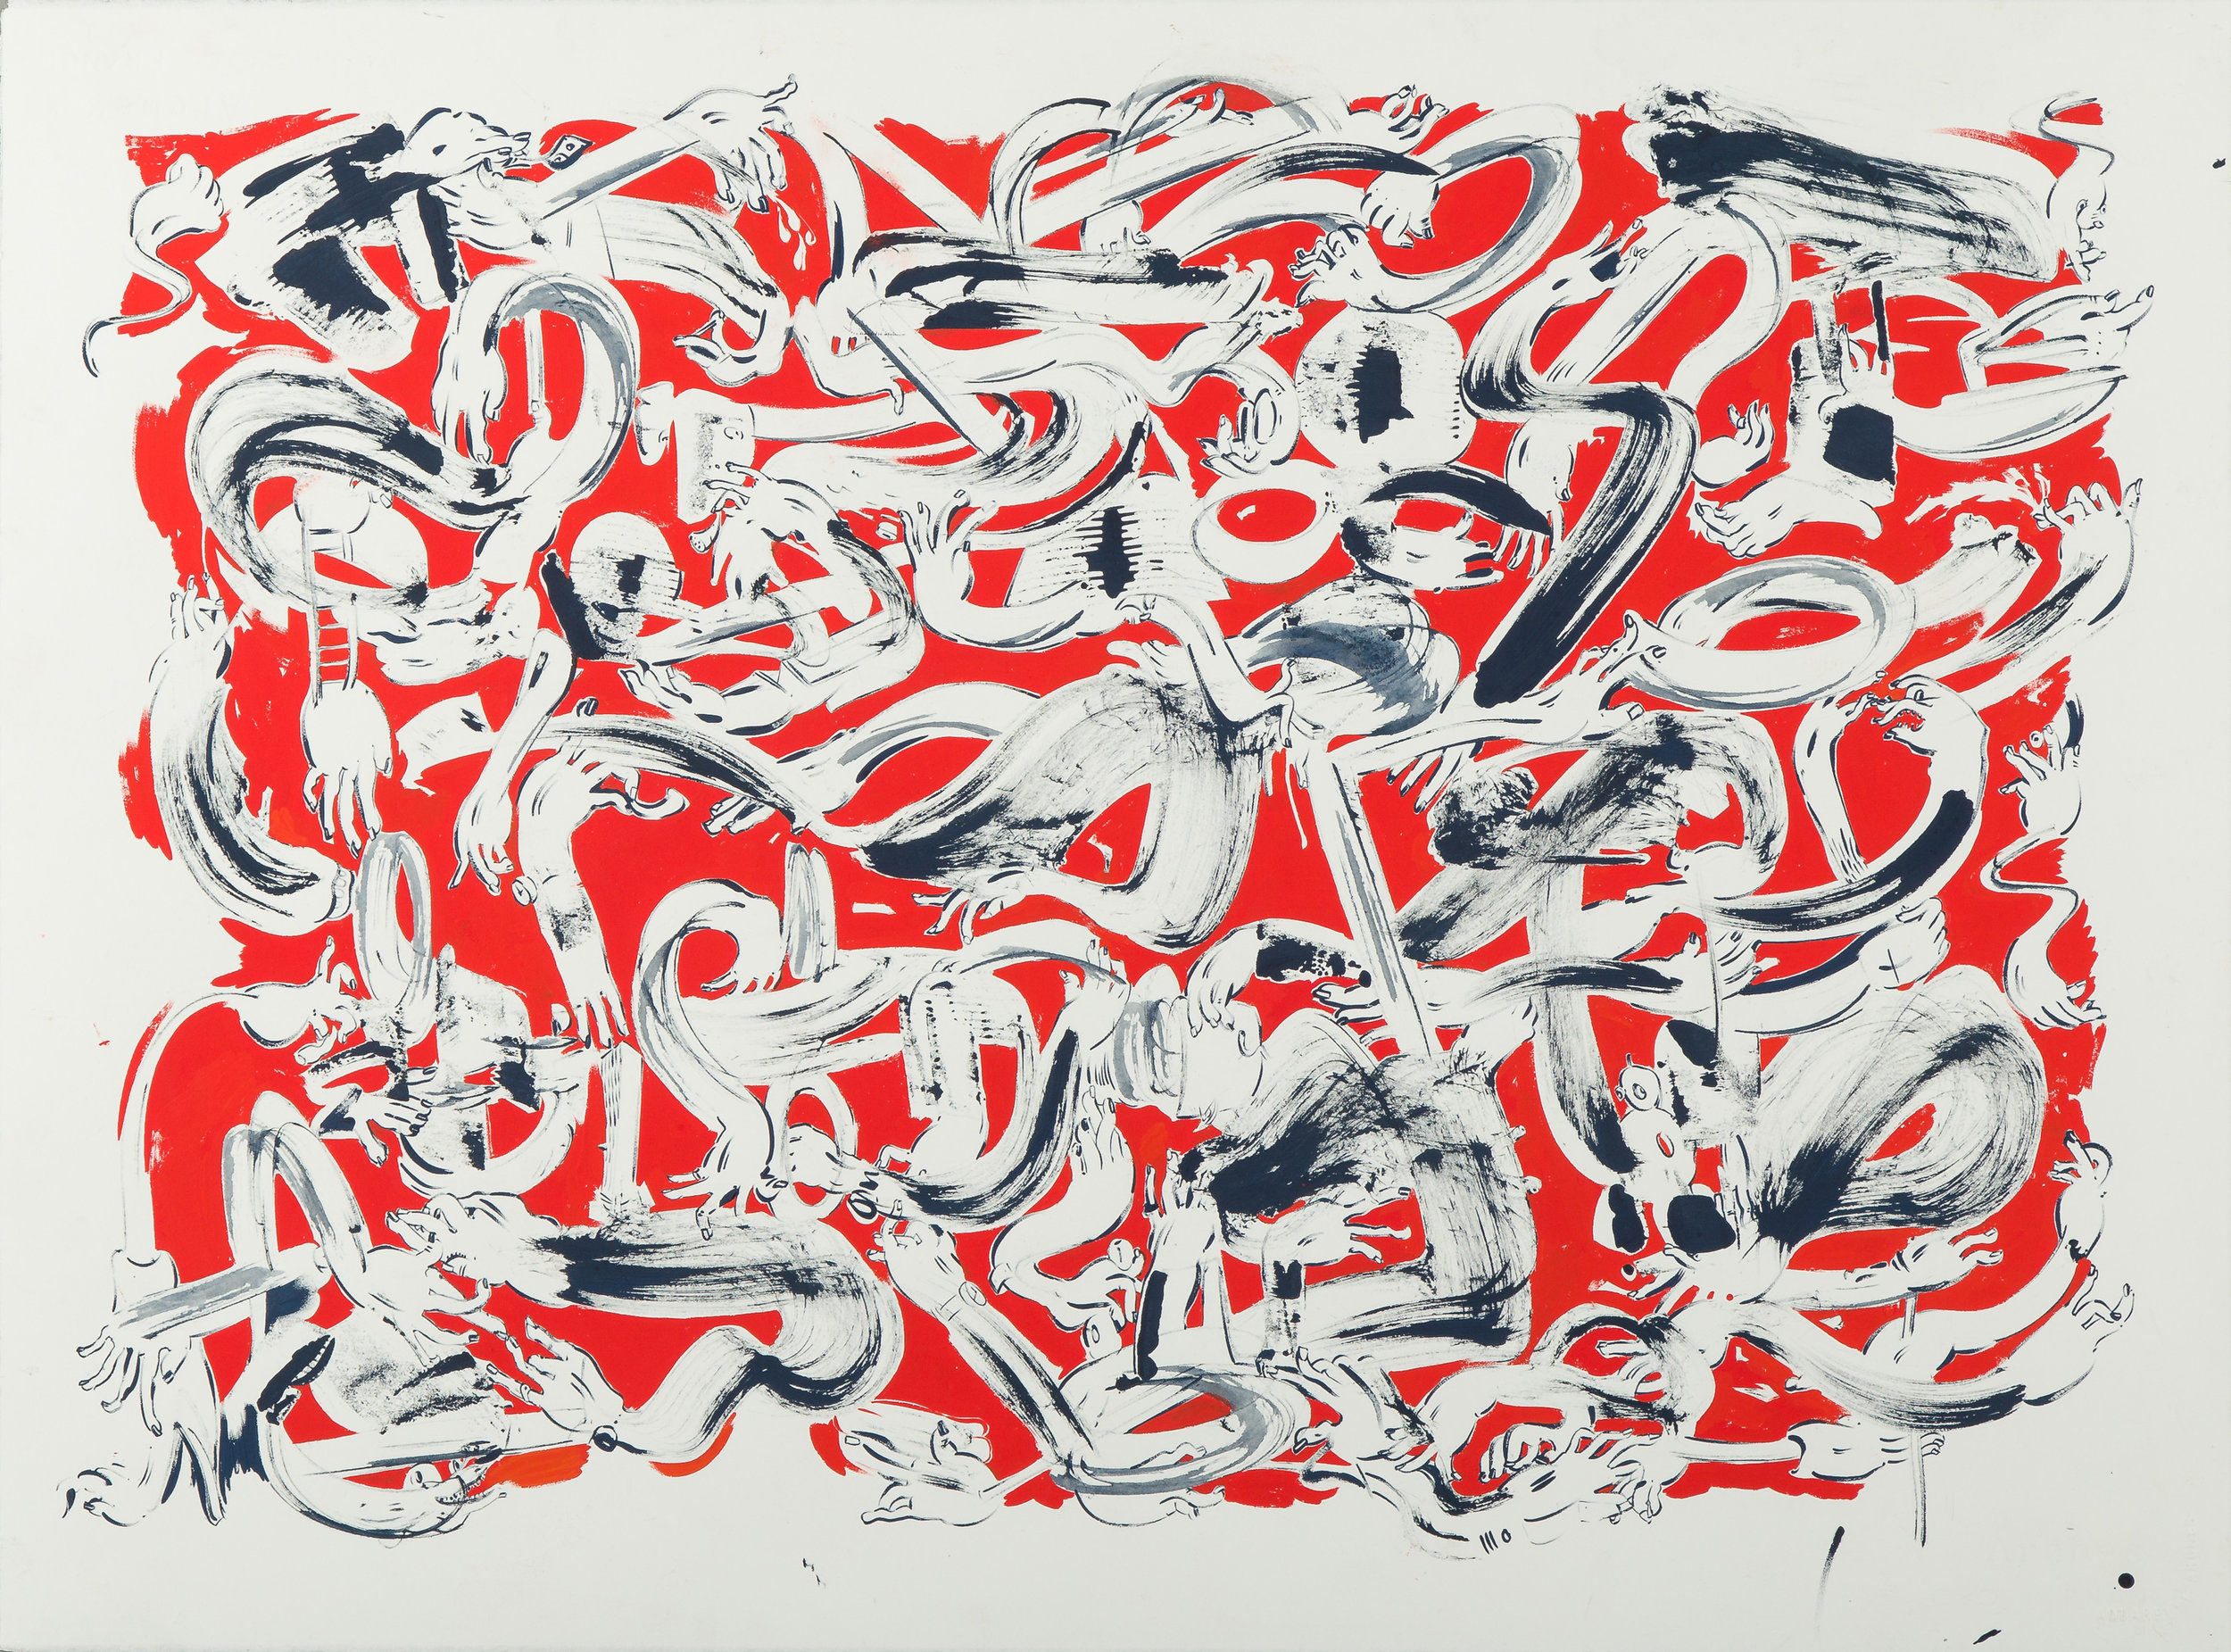 Handy (Barber) , 2014 Gouache and ink on paper 22 x 30 inches